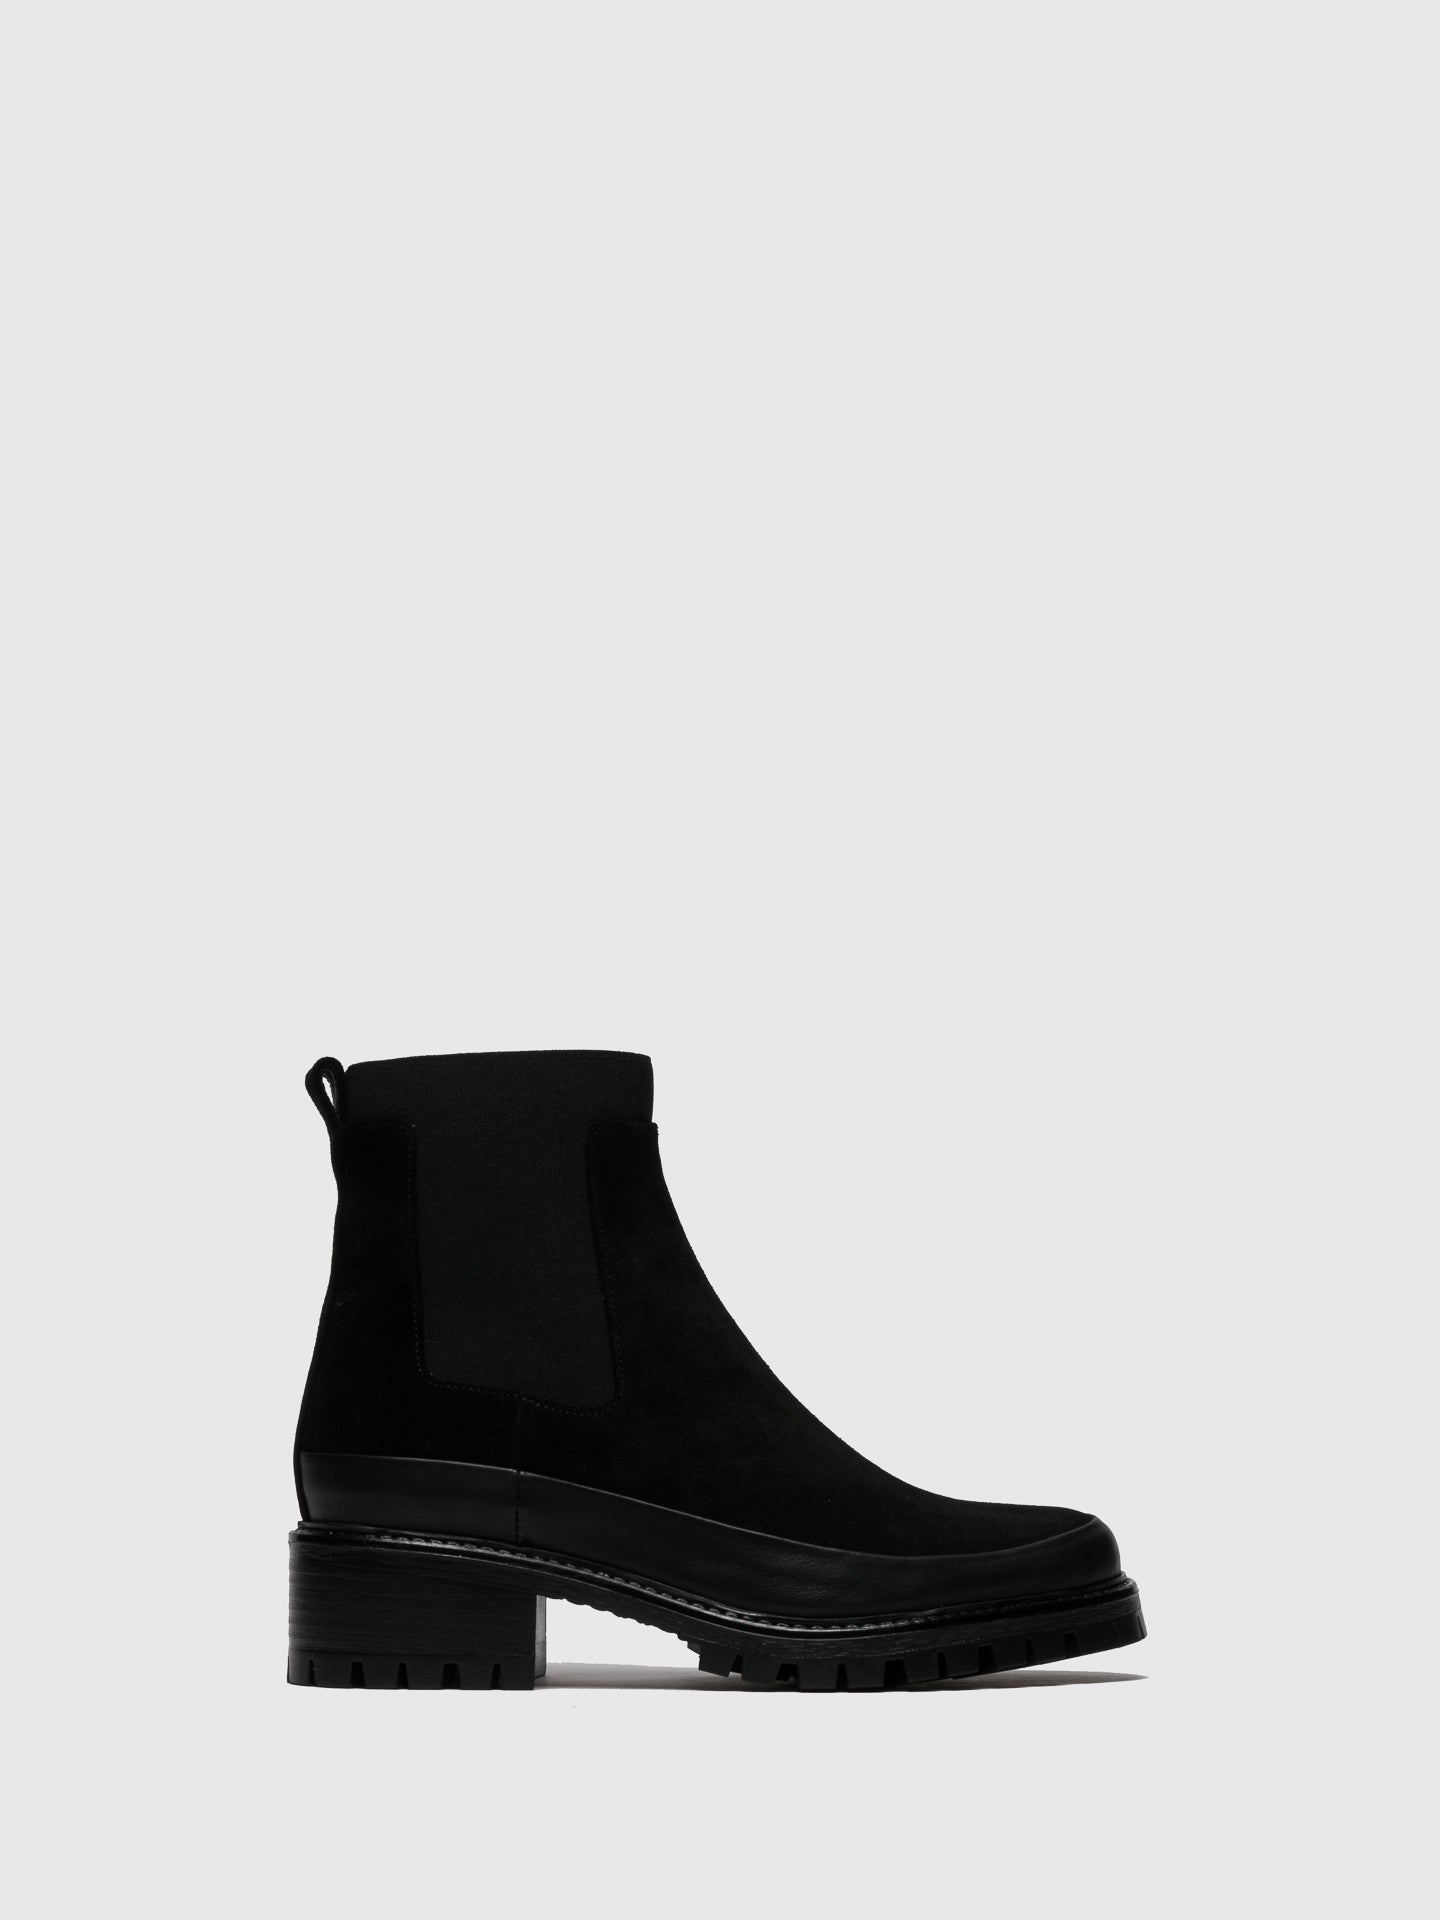 JJ Heitor Black Suede Chelsea Ankle Boots